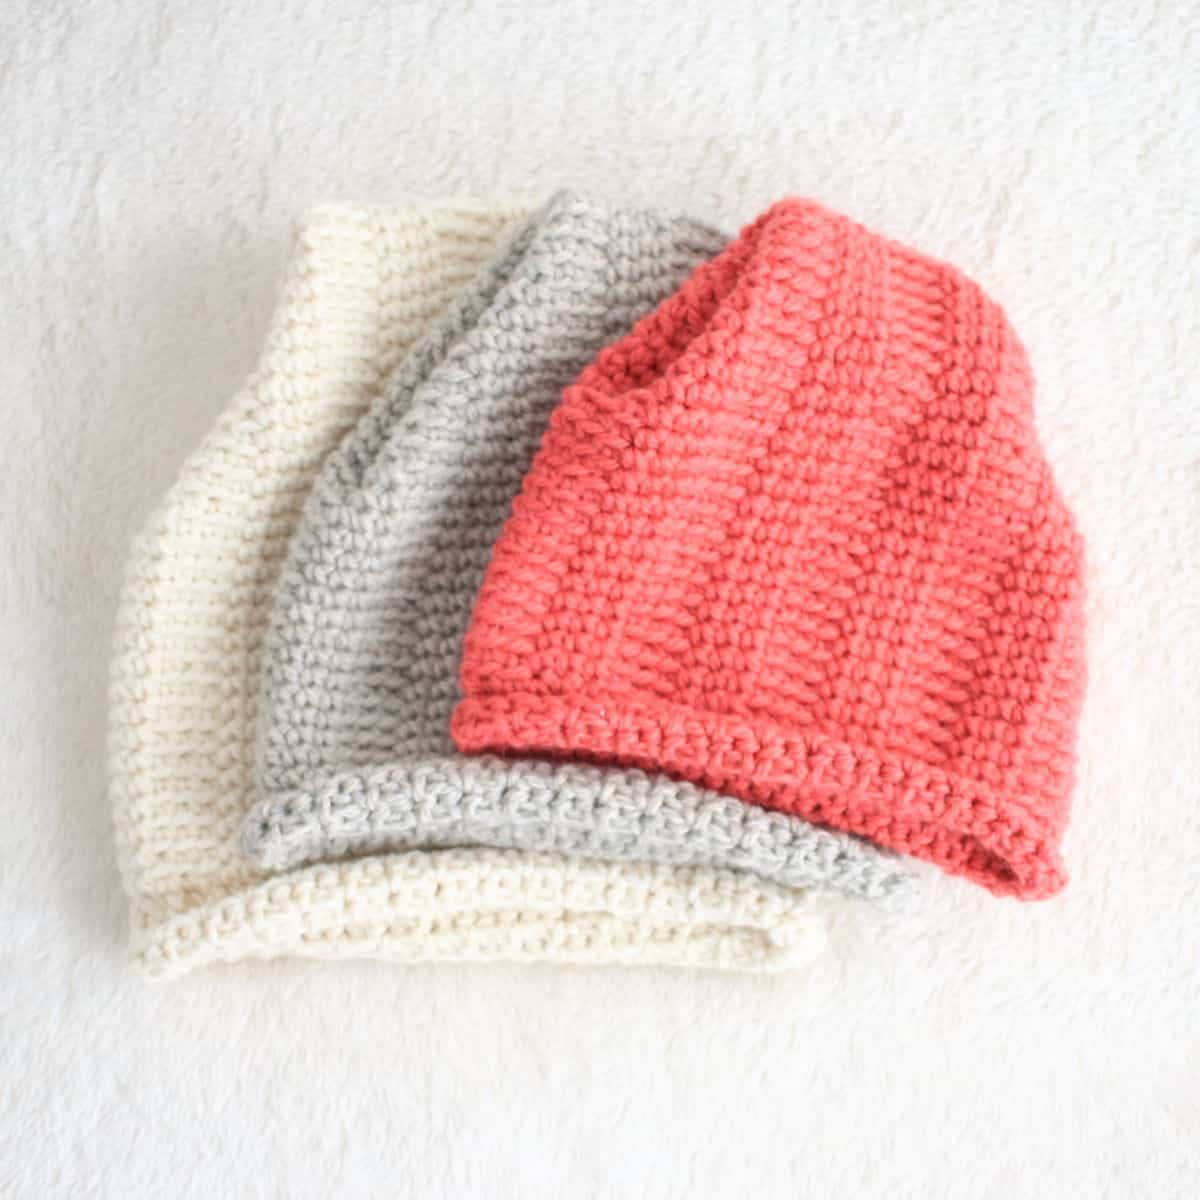 Hill Crest Crochet Hats - Sizes for Entire Family